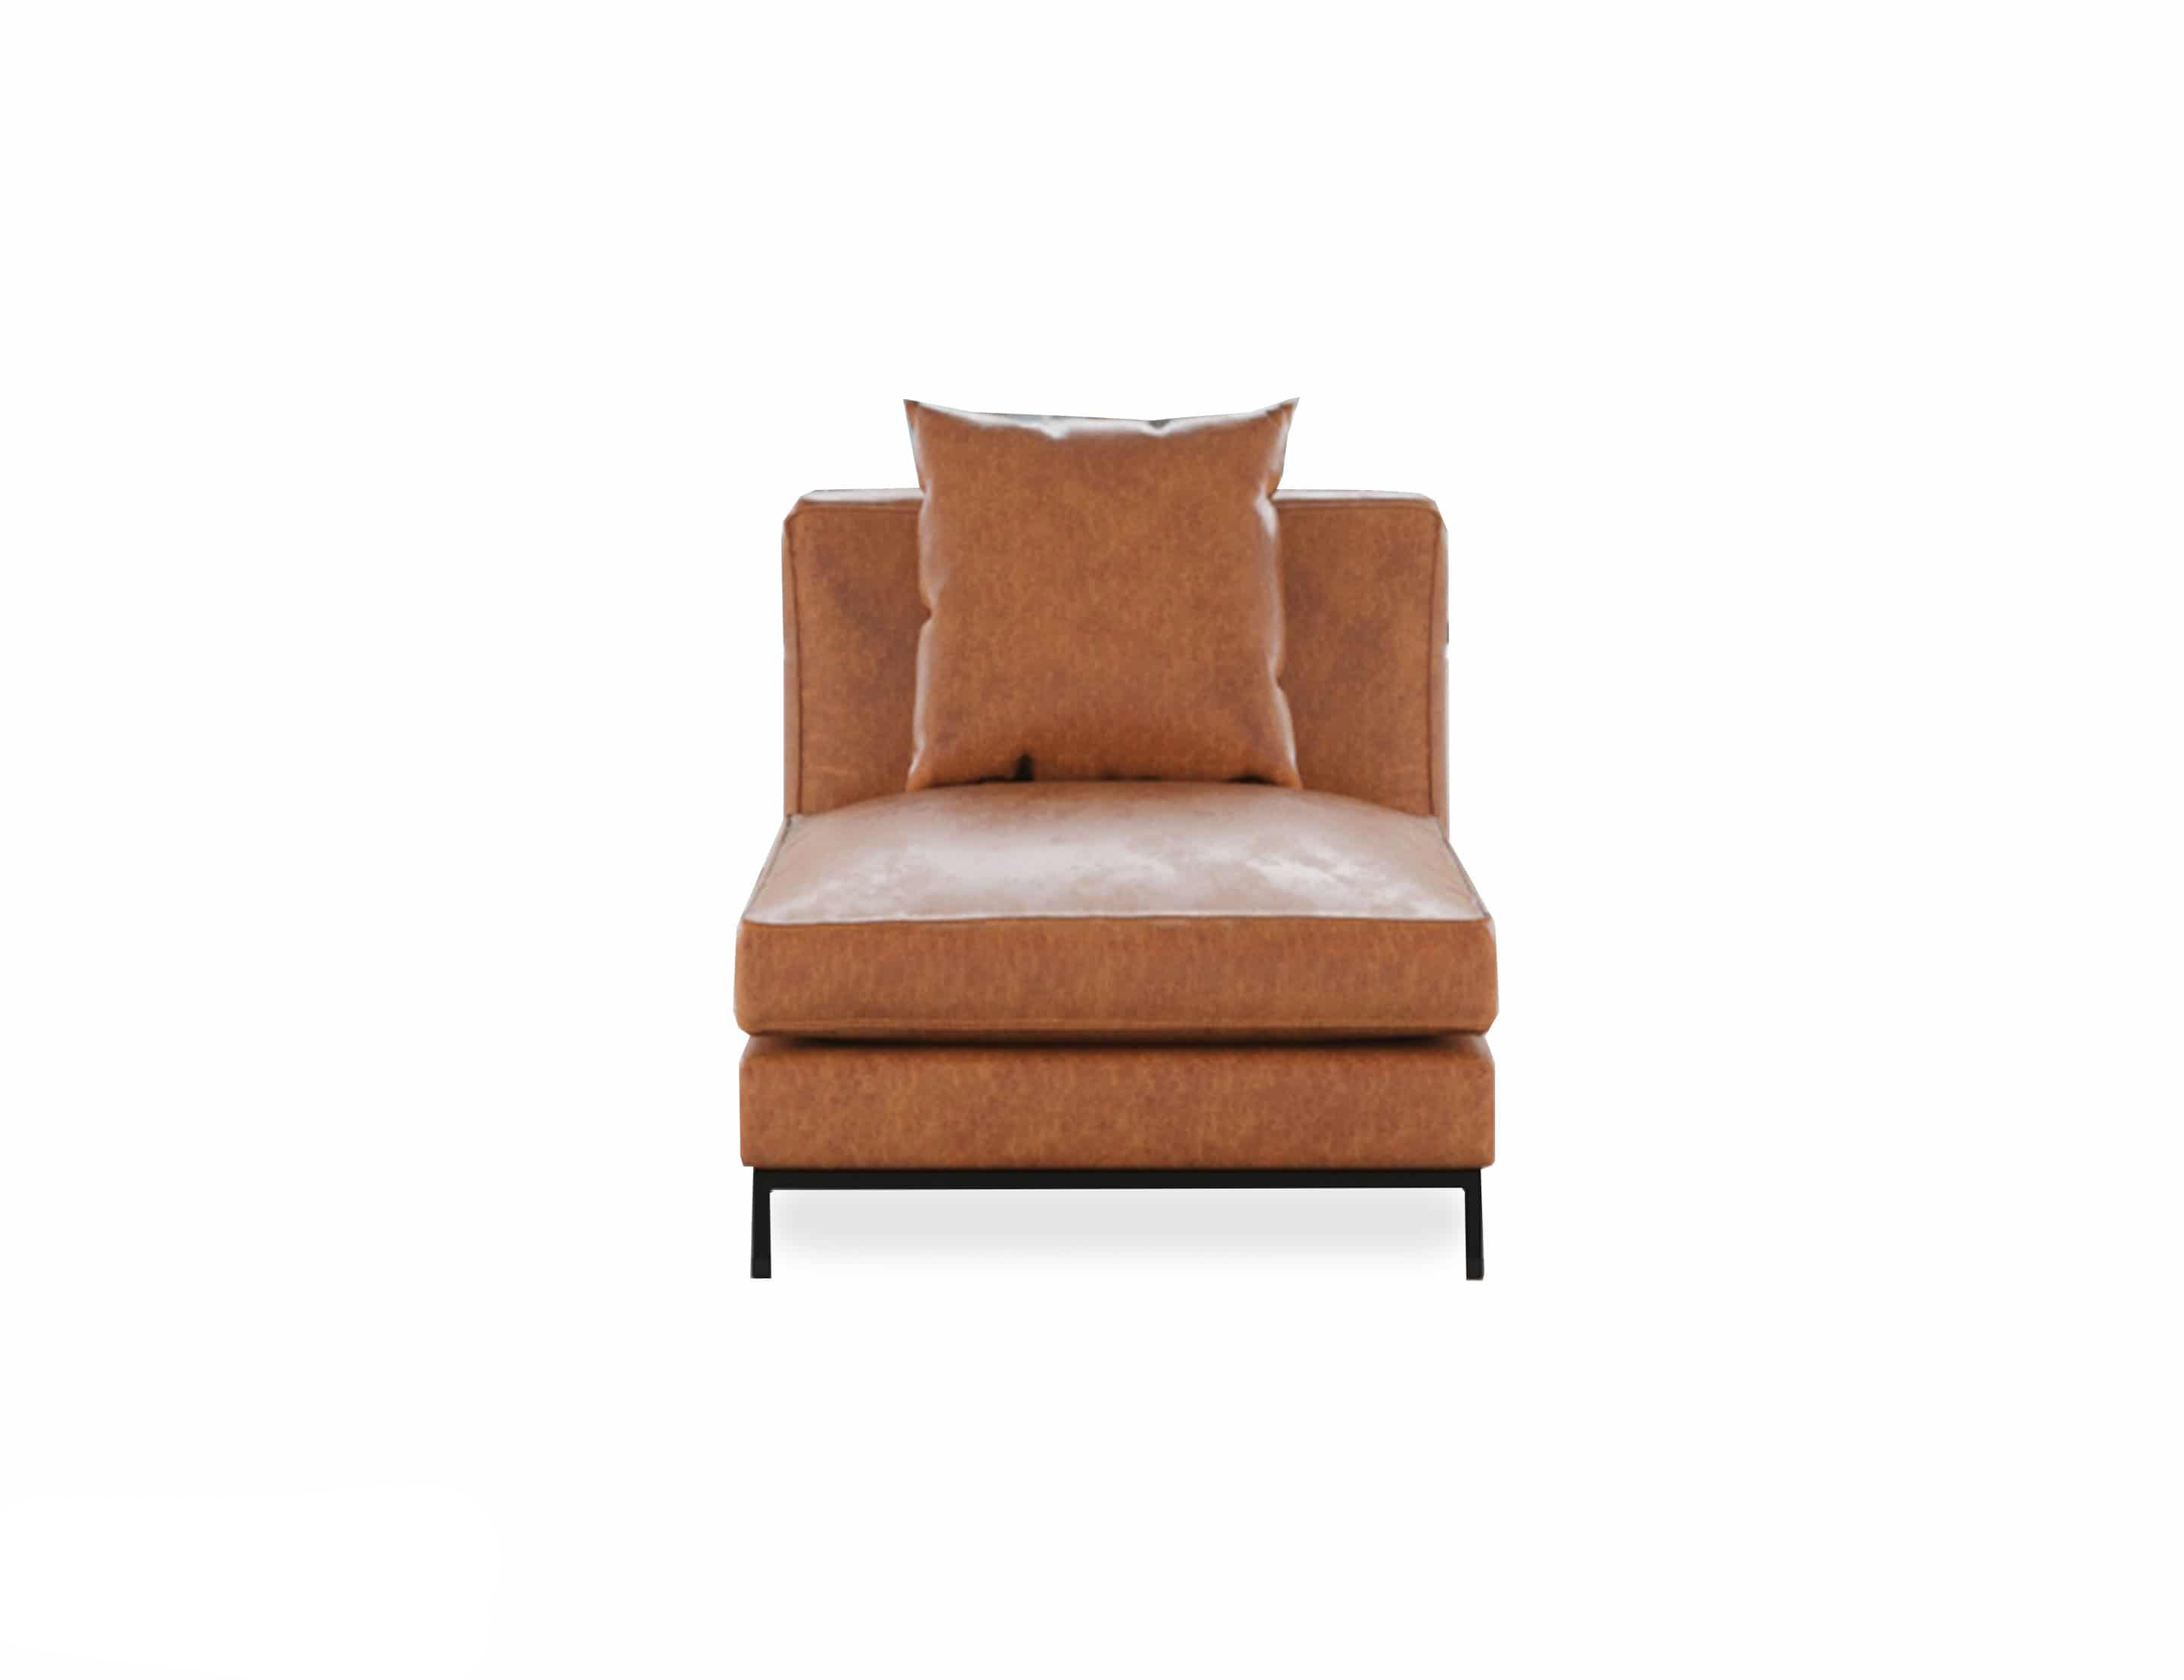 Picture of: Migliore Single Sofa Module Expand Furniture Folding Tables Smarter Wall Beds Space Savers